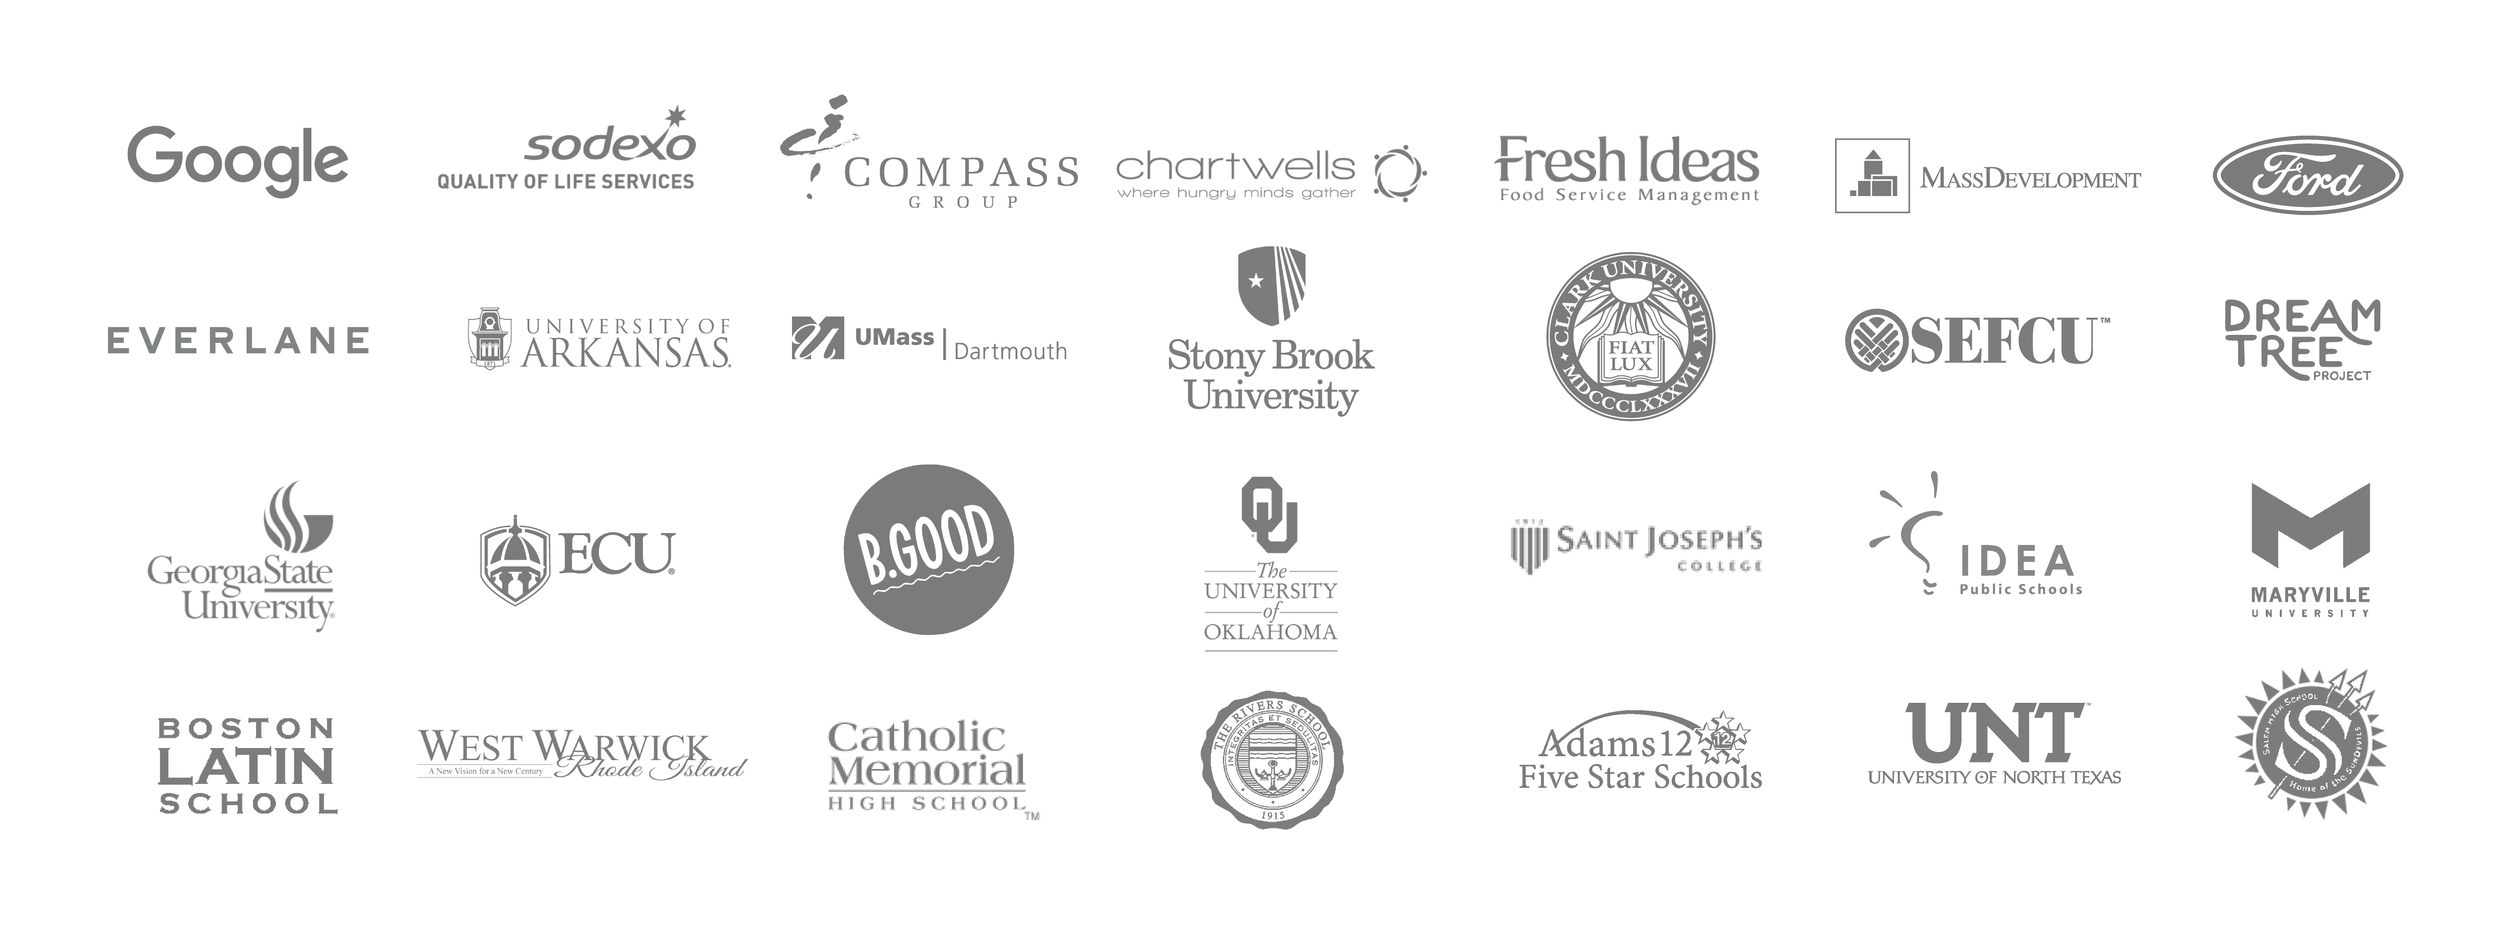 Resources For Org_Customer Logos-03-01.png